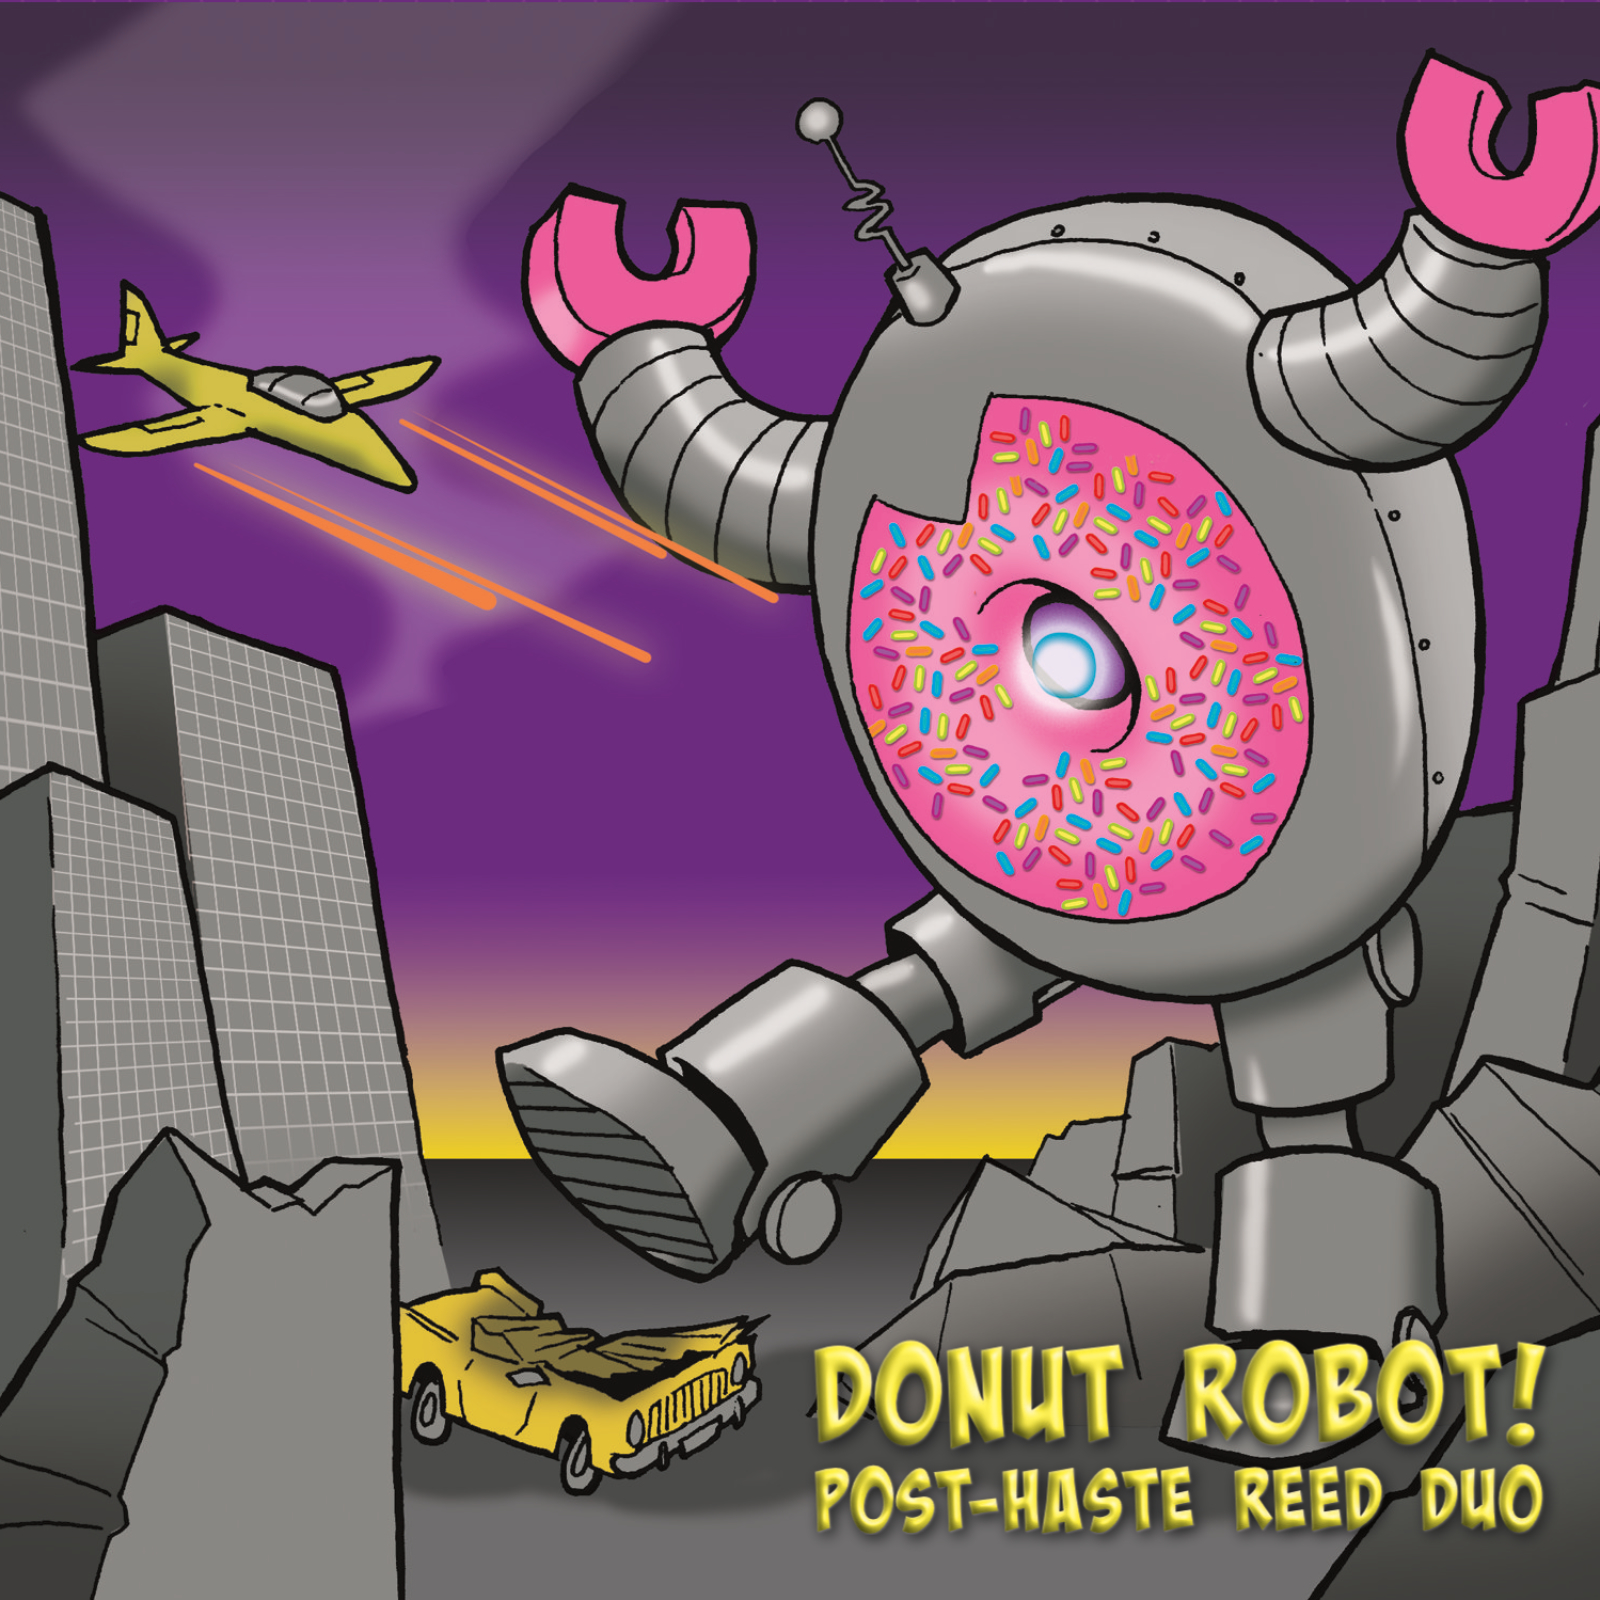 Donut Robot! by Post-Haste Reed Duo